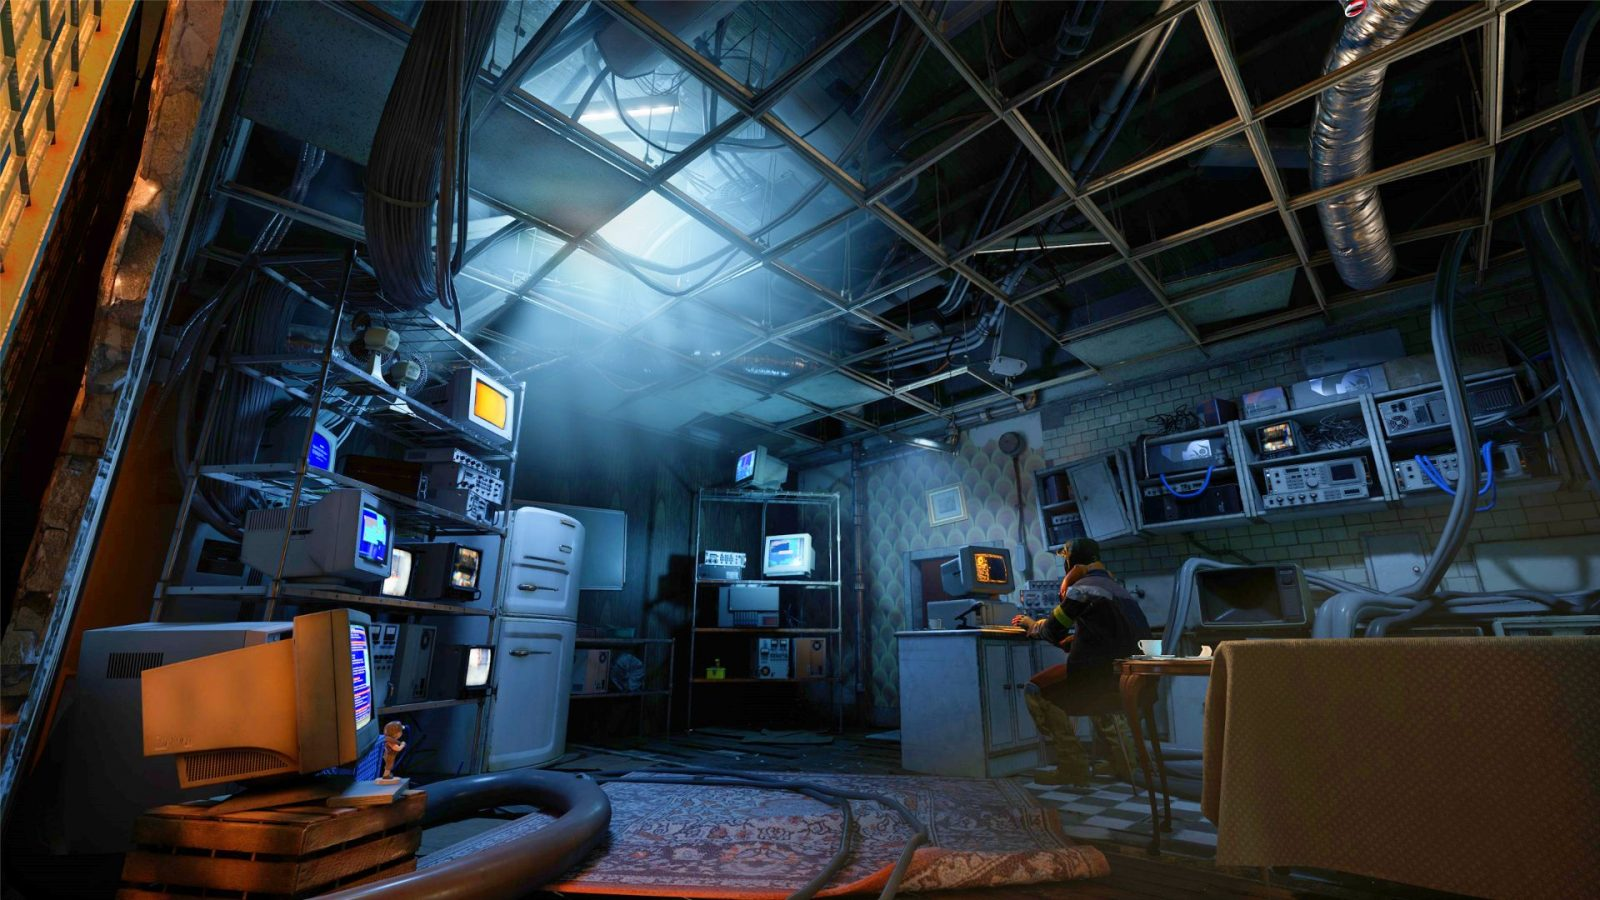 Half-Life: Alyx will have Steam Workshop support and a Source 2 level editor